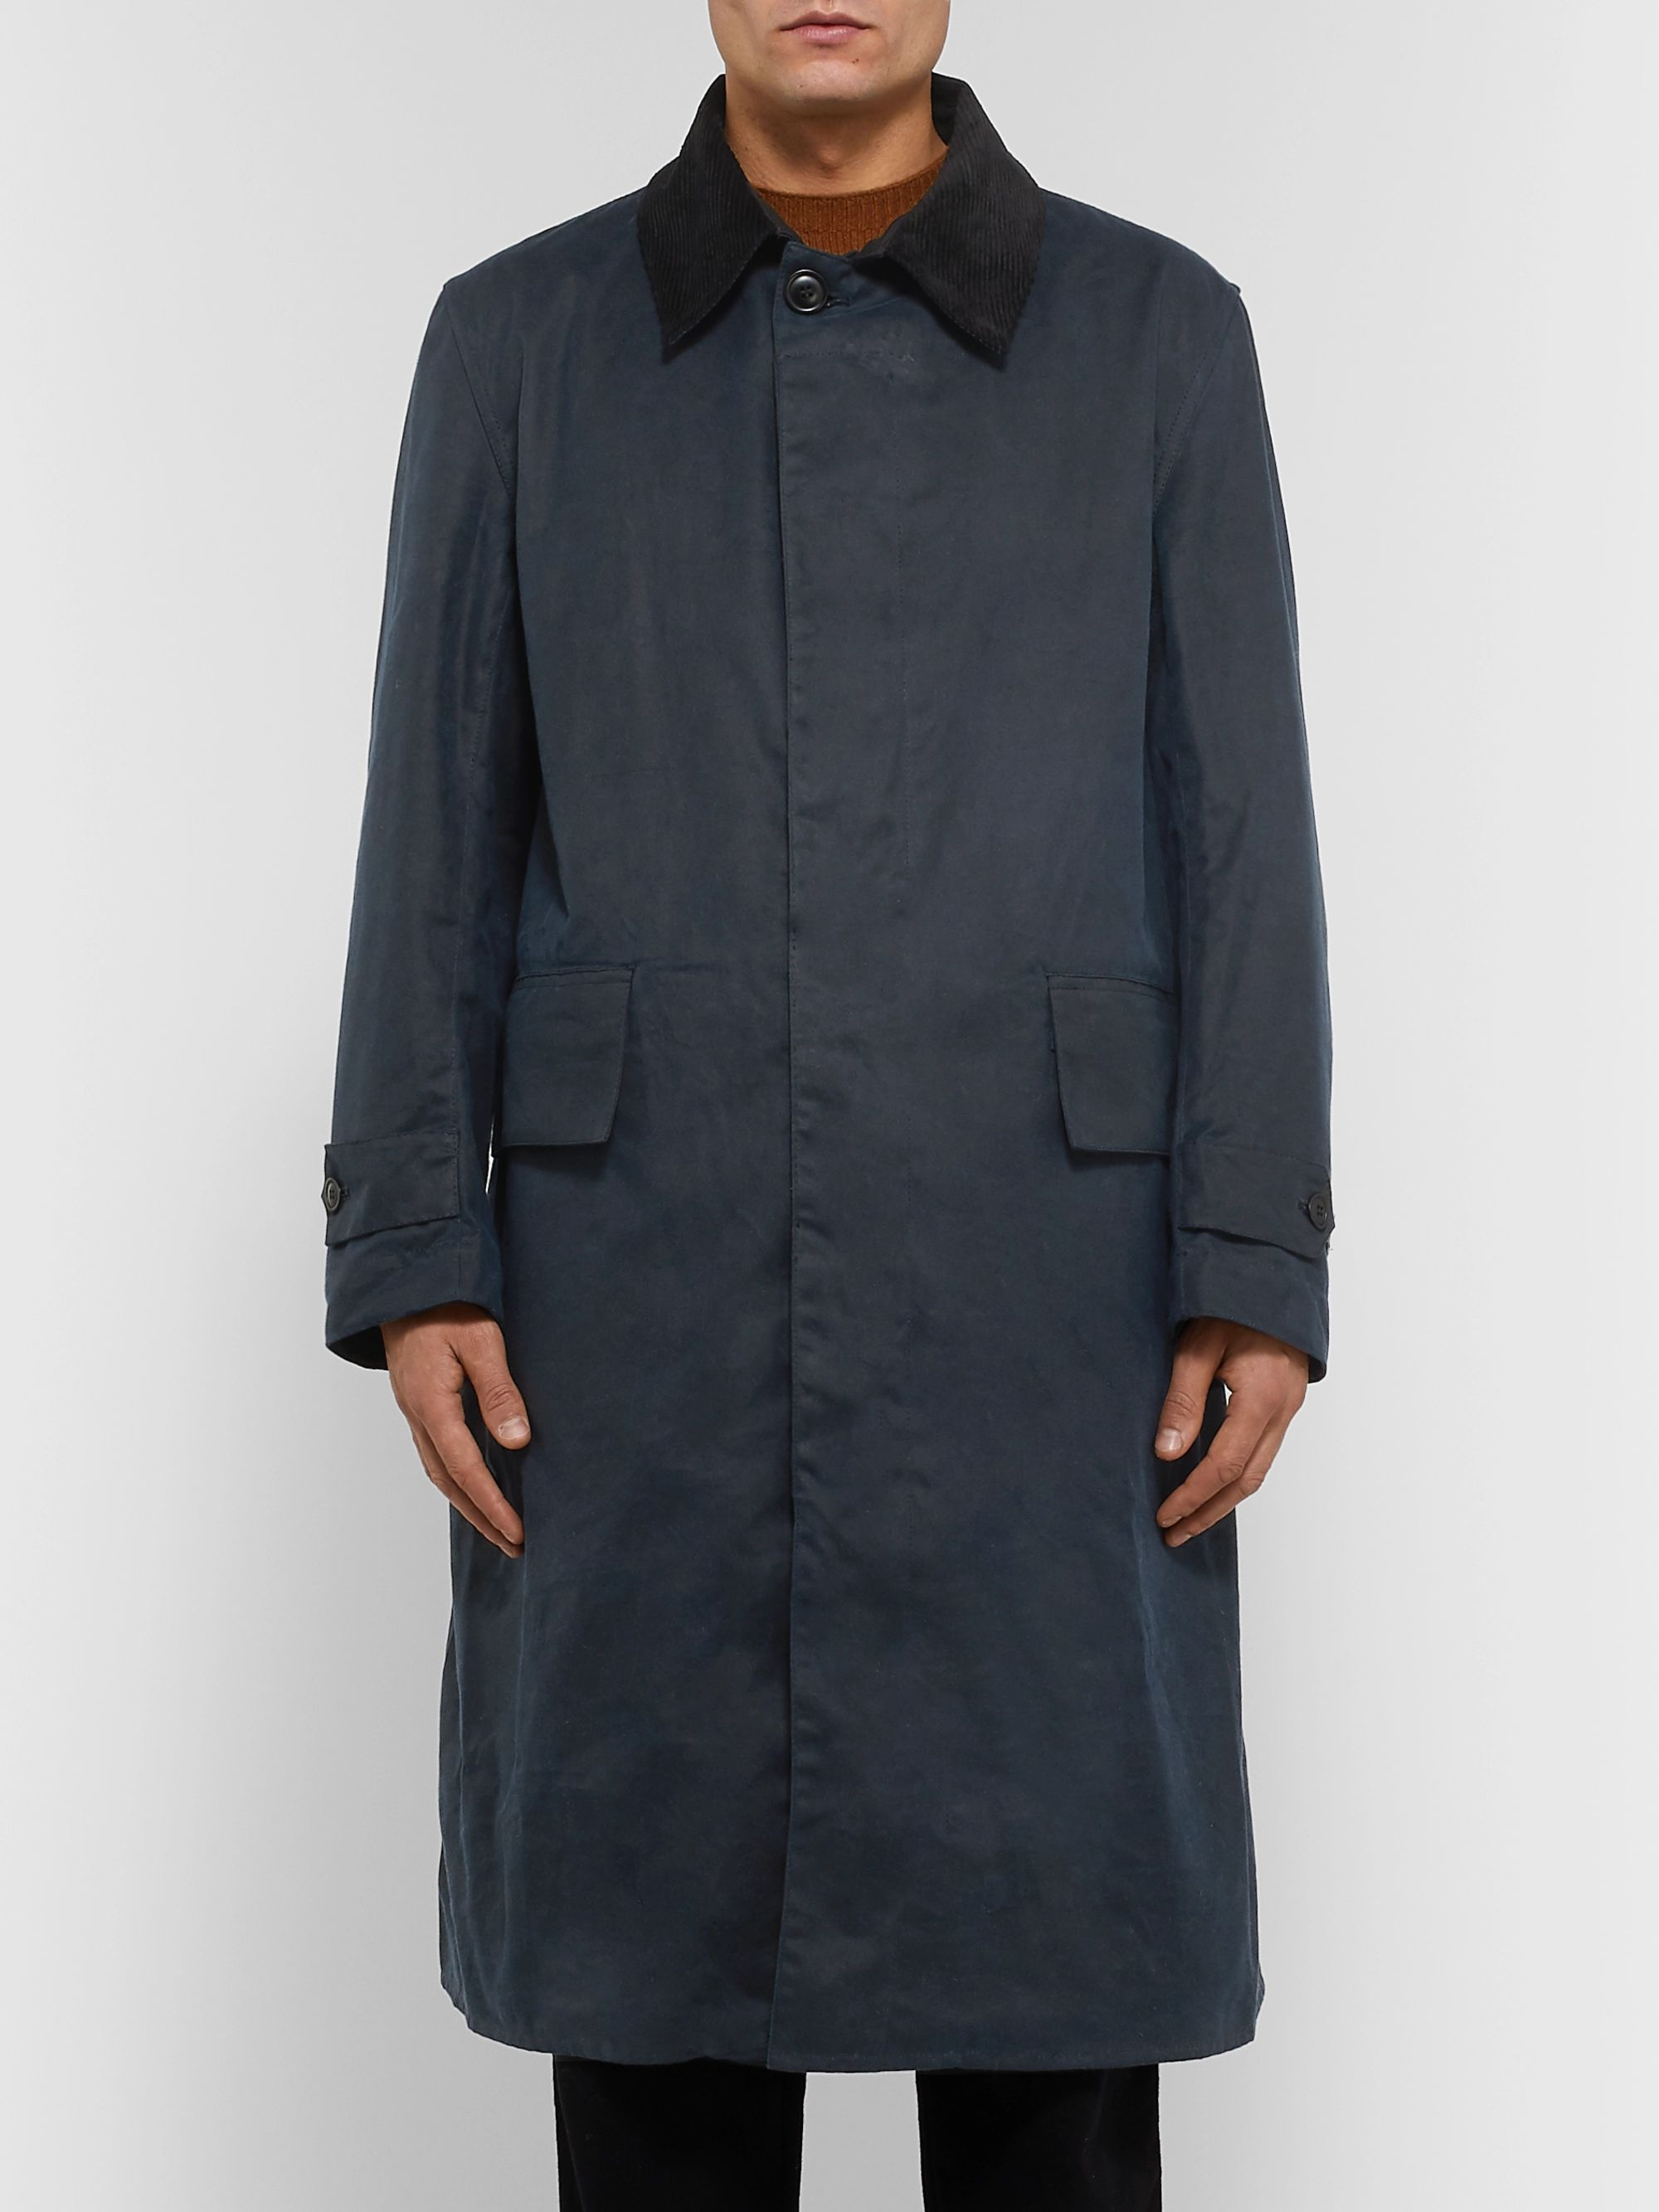 Barbour White Label + Margaret Howell Waxed-Cotton Coat